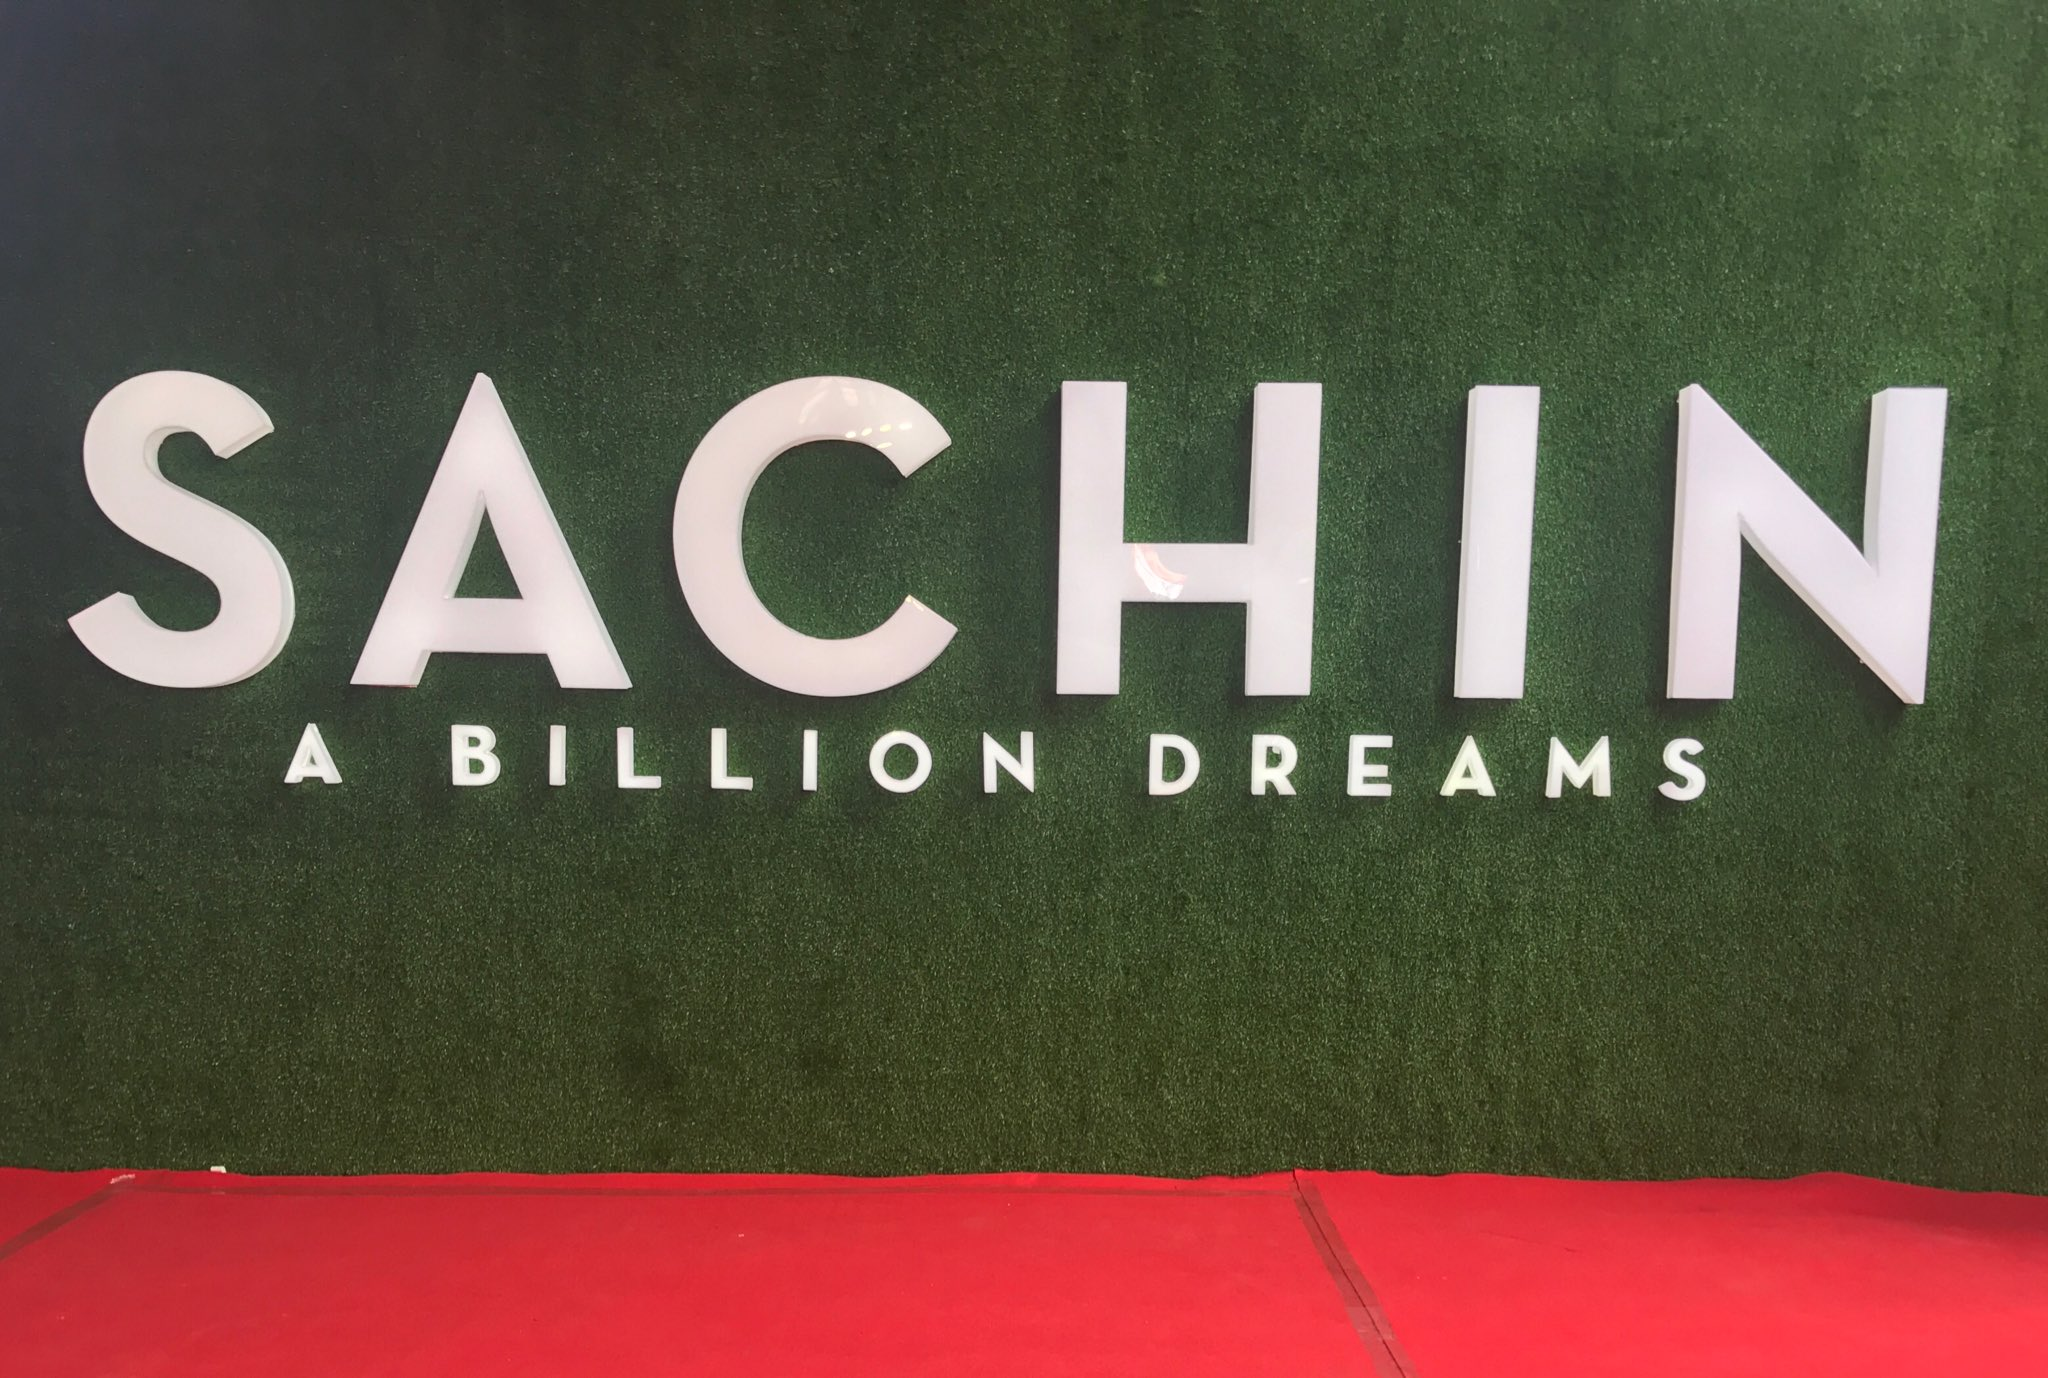 Stay tuned for updates from the World Premiere of Sachin: A Billion Dreams. Only on my app #100MB. https://t.co/CsHi6bSbE3